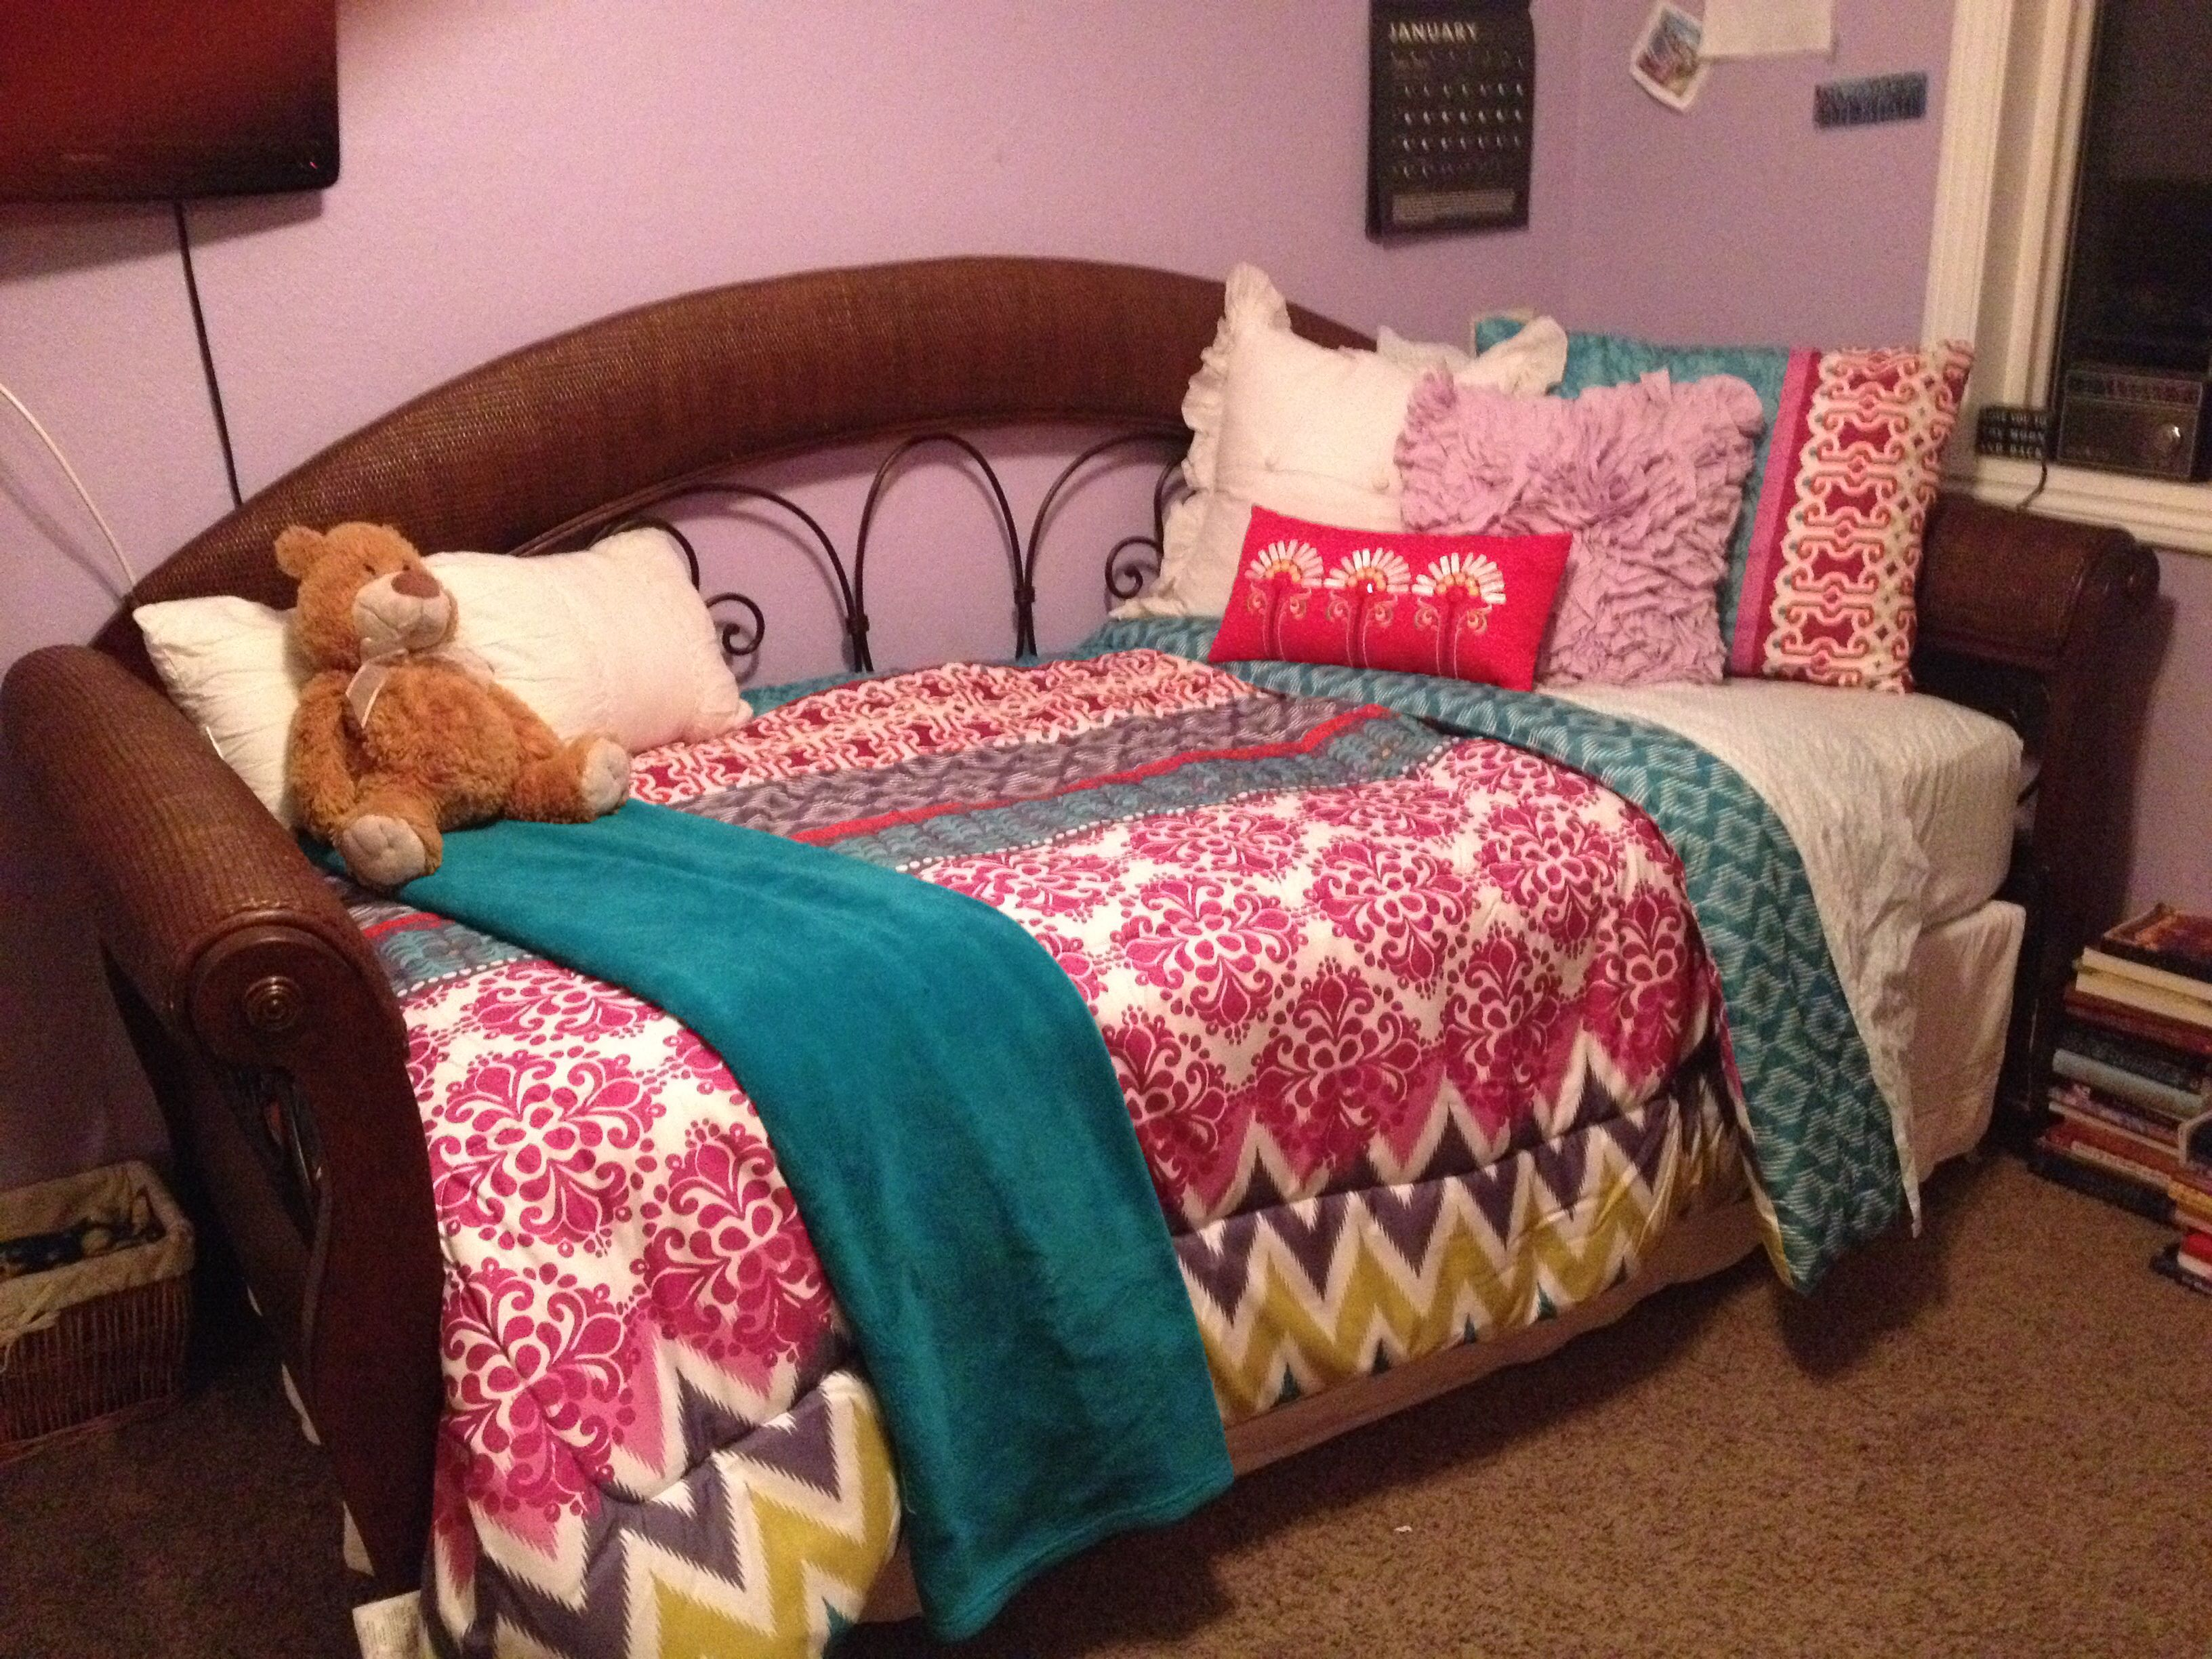 Cute Bedspread From Bed Bath And Beyond Cute Bedspreads Bed